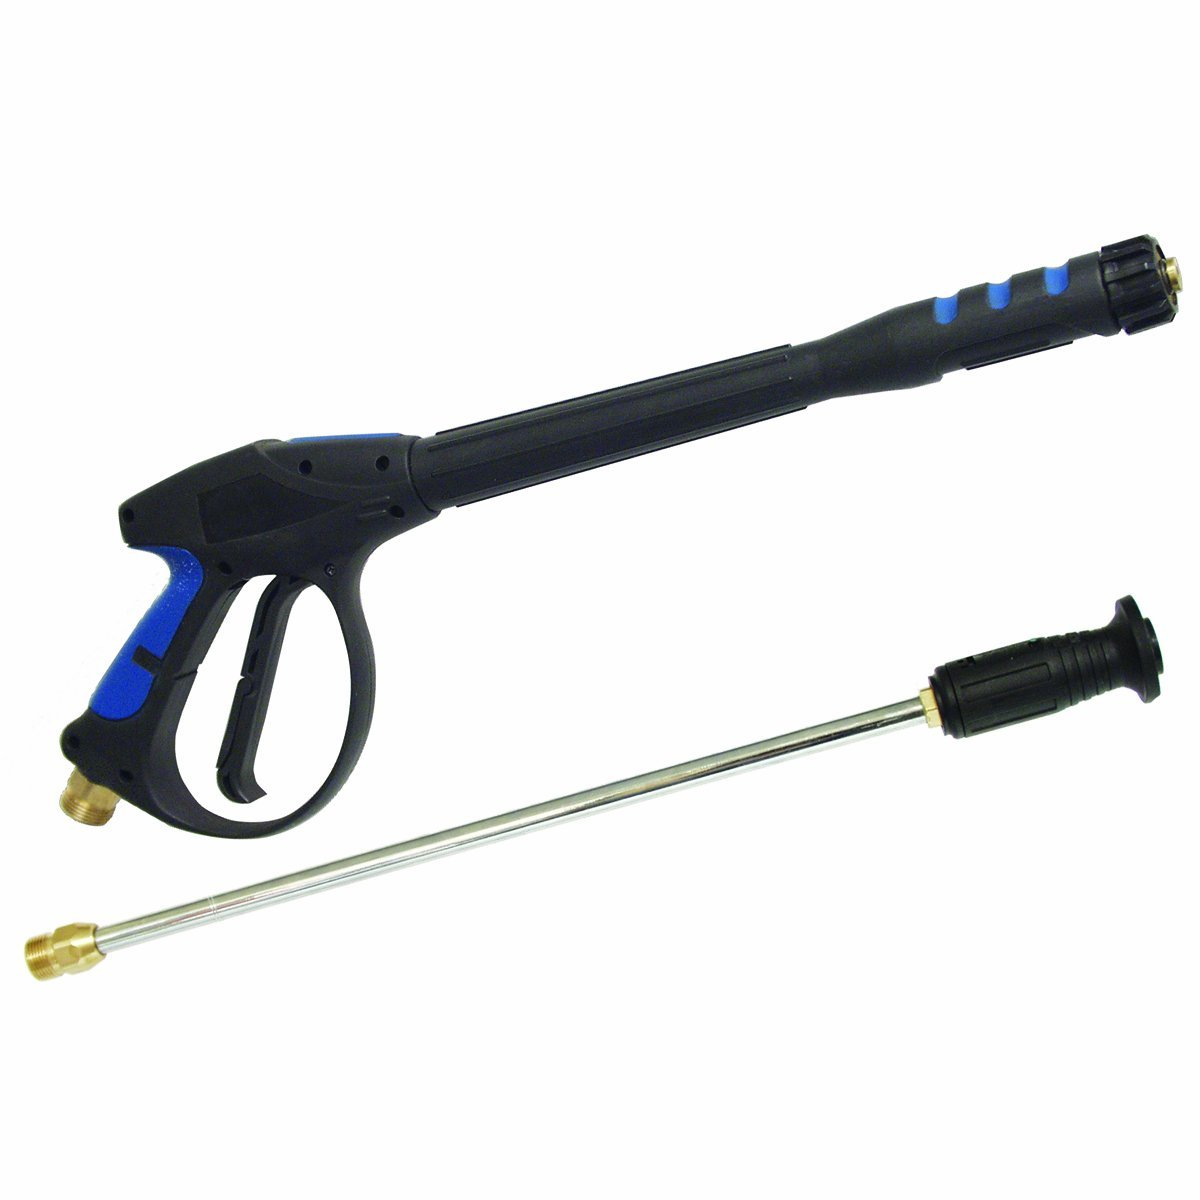 Best Pressure Washer Wand 2016 – Top Picks